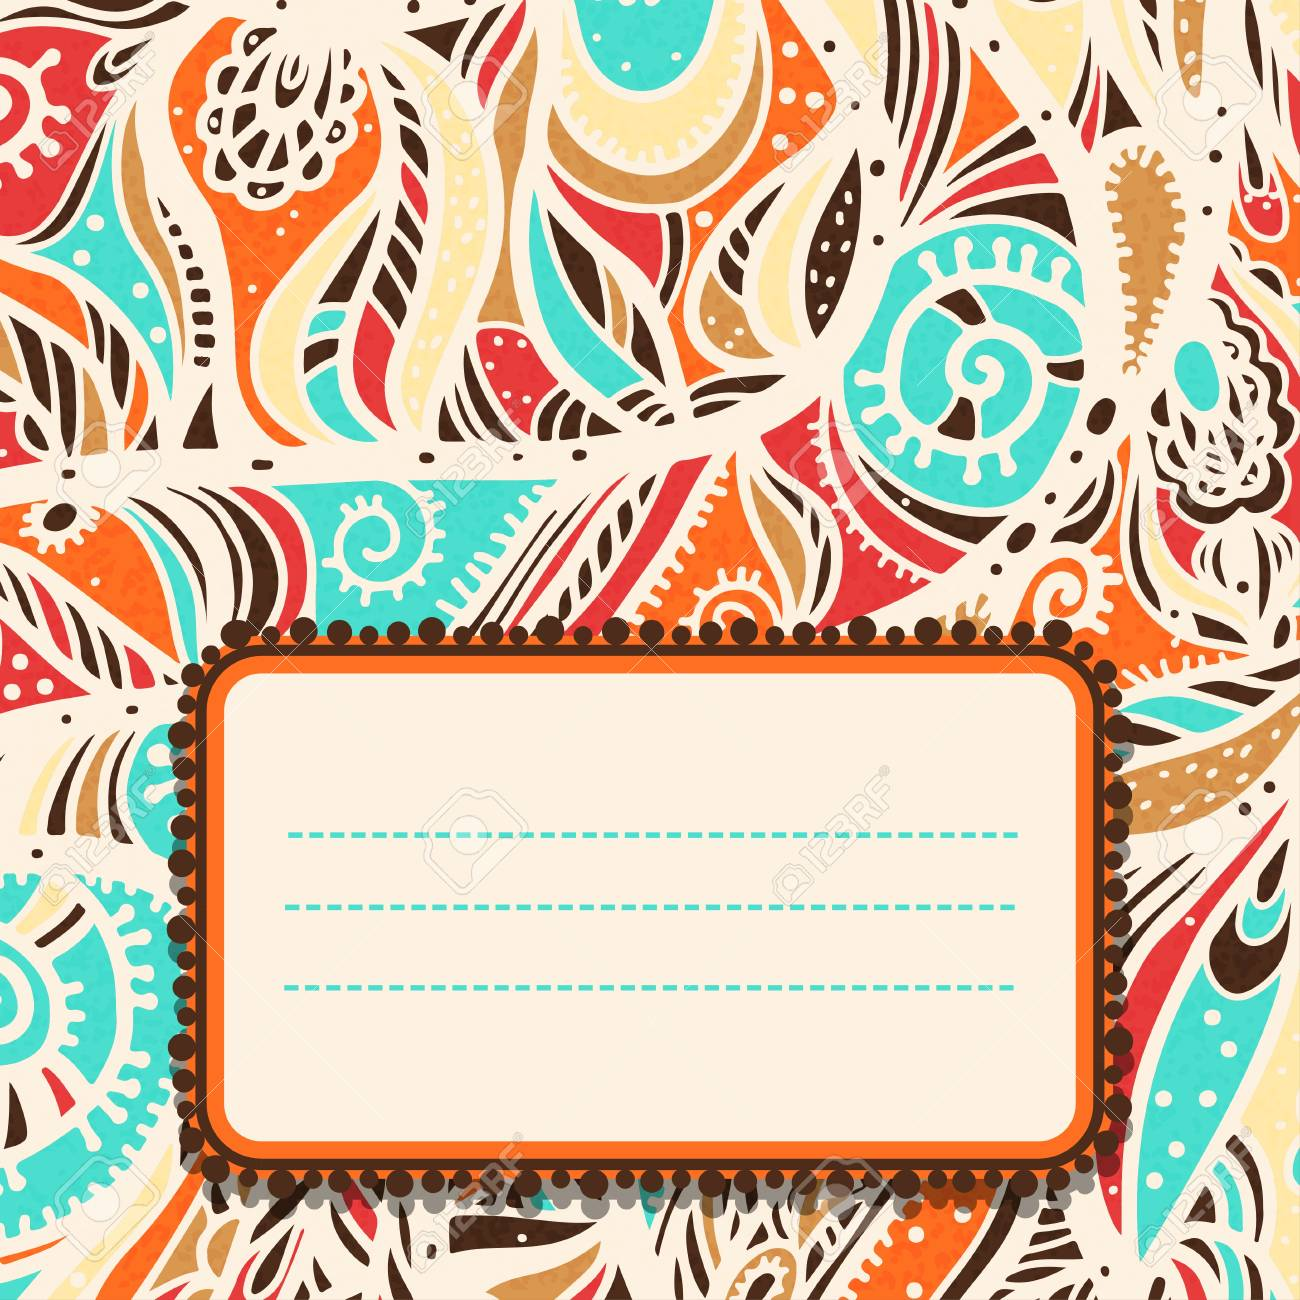 Abstract colorful background with space for text - vector Stock Vector - 19035575